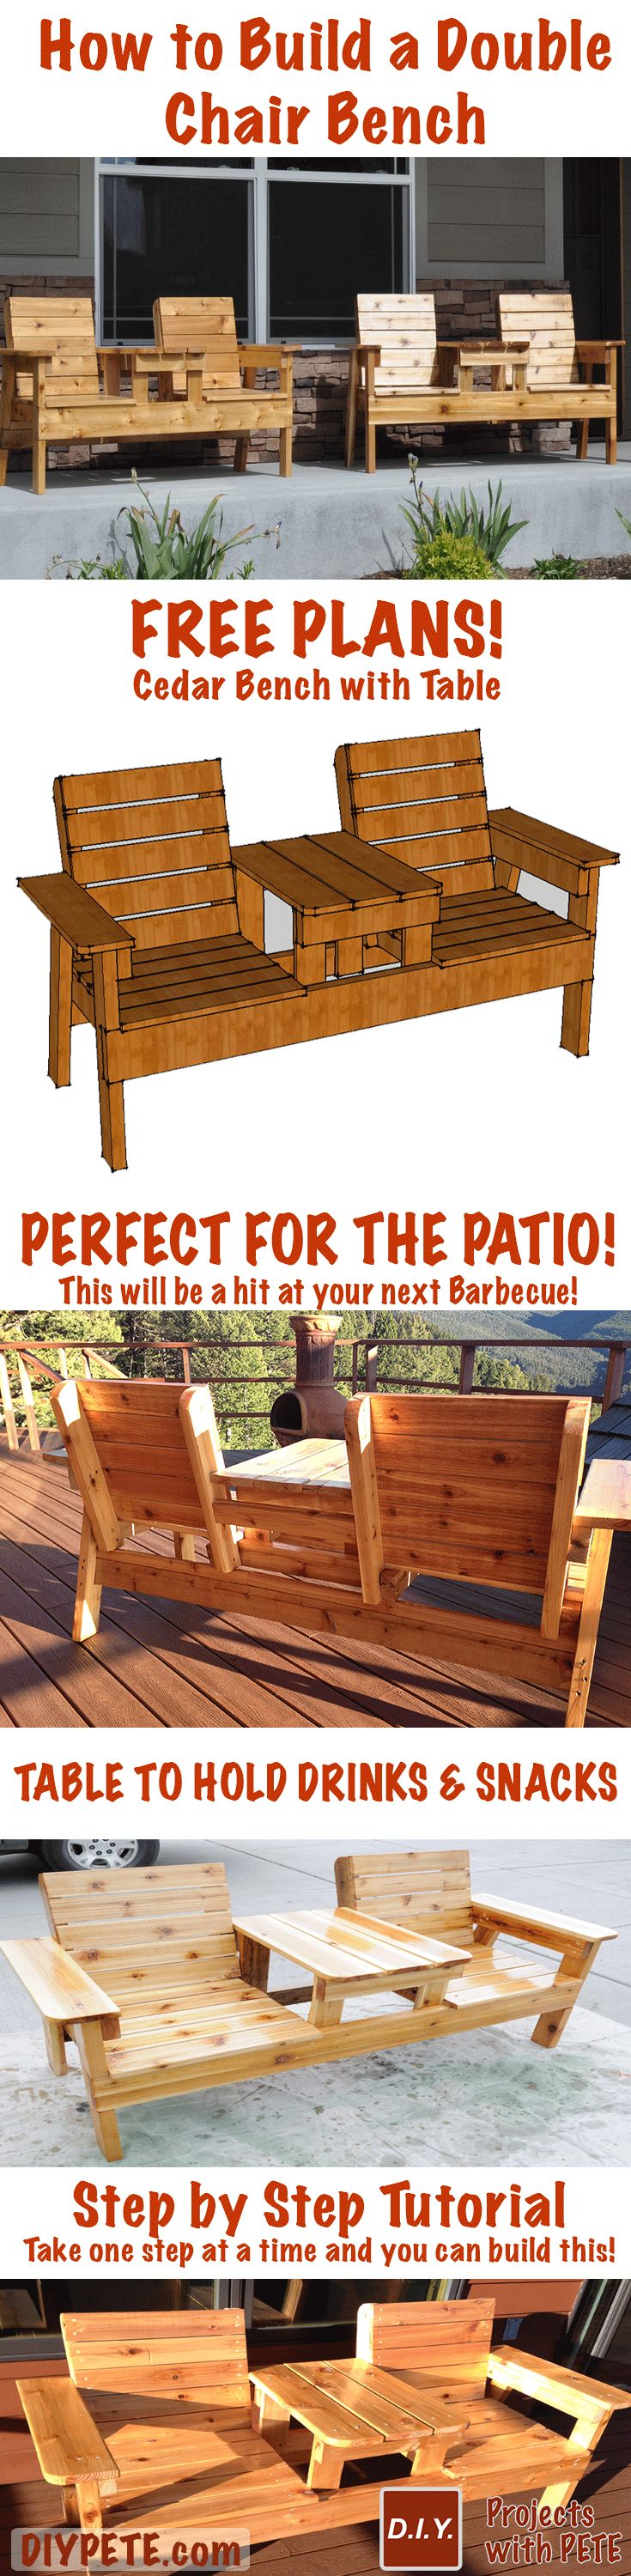 Build your own Double Bench Chair with FREE plans and a 15 minute video tutorial that breaks this project down into easy steps so you can take action and build this project for your patio! #woodworking